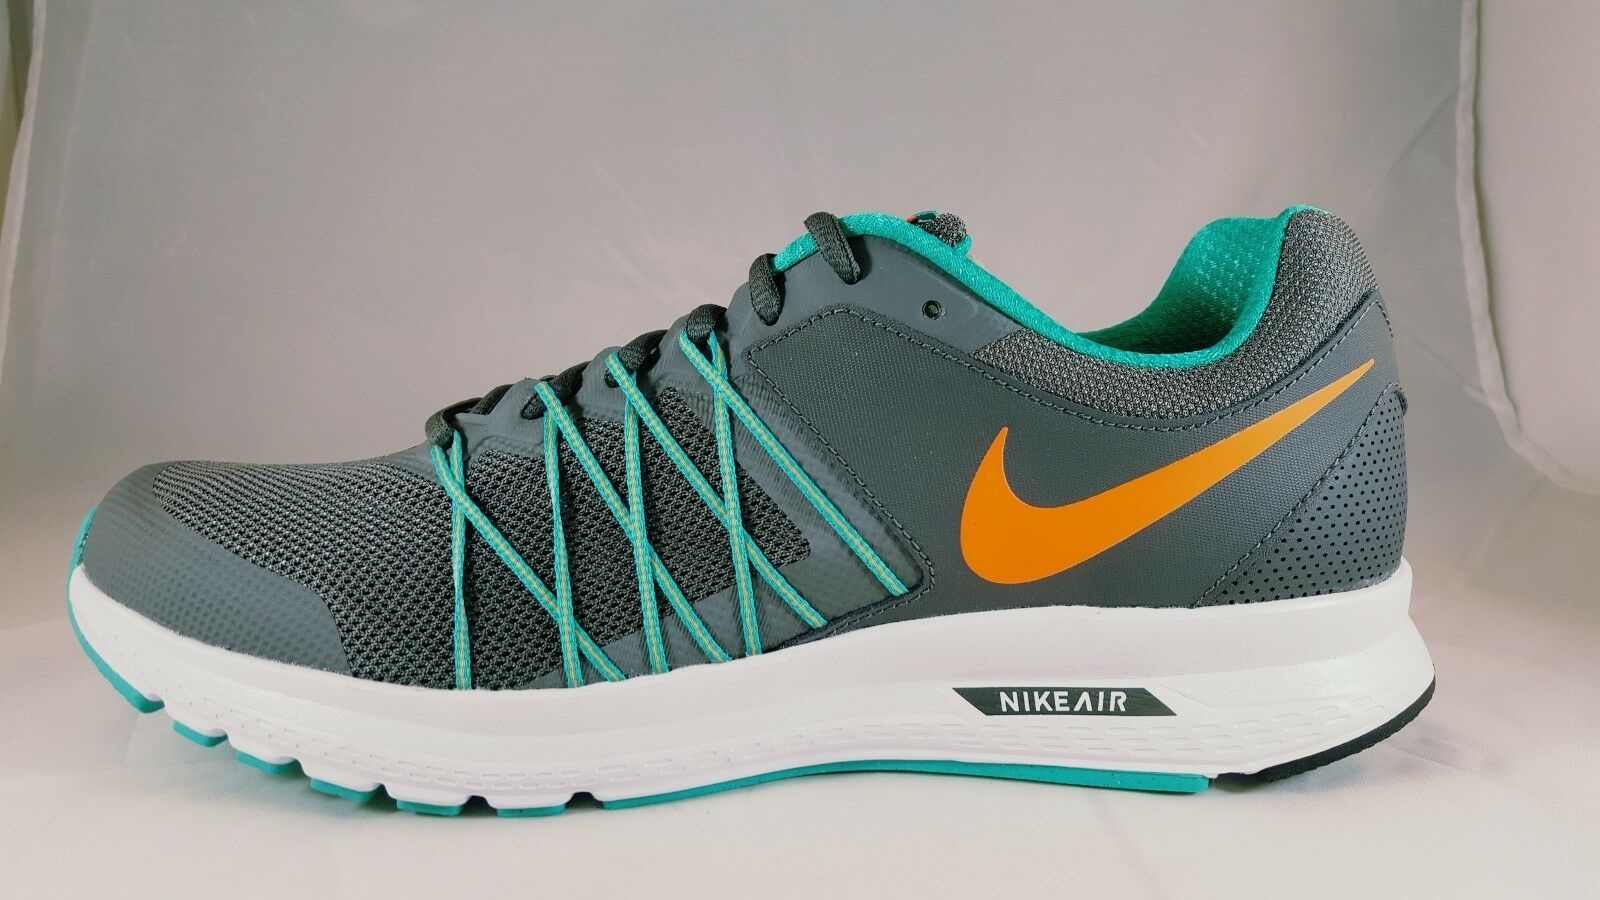 Nike Air Relentless 6 Men's Athletic shoes 843836 002 Size 10.5